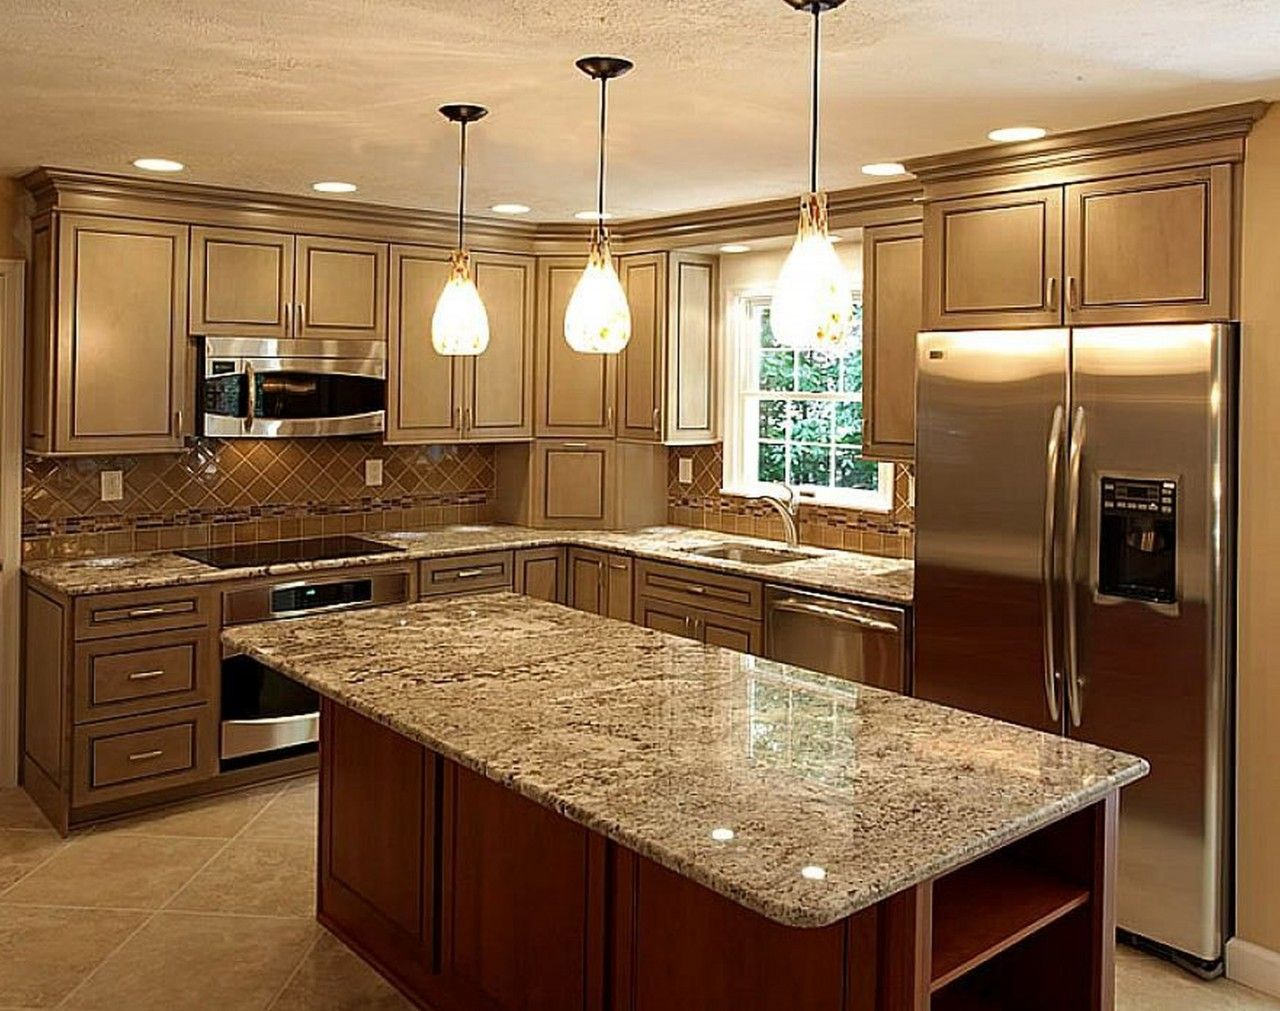 Endearing home depot quartz countertops build magnificent for Countertop decor ideas